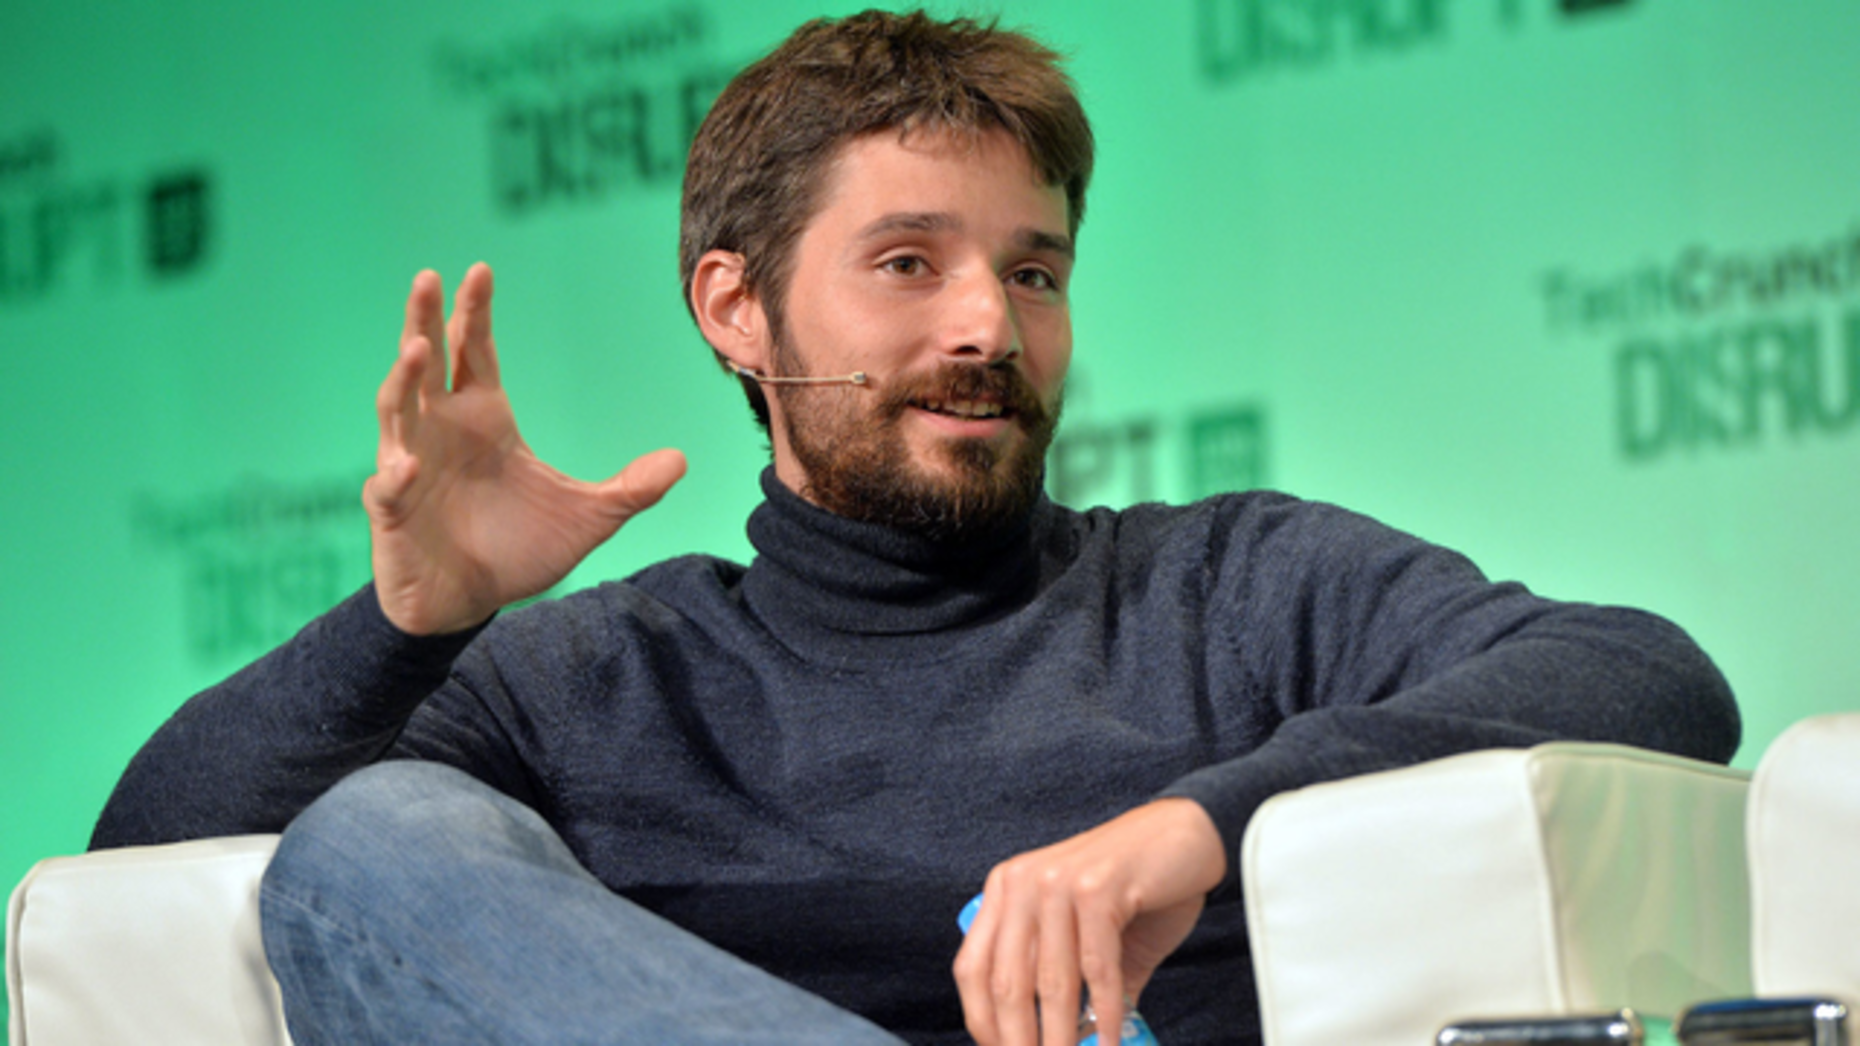 Docker founder Solomon Hykes. Photo by Flickr/Techcrunch